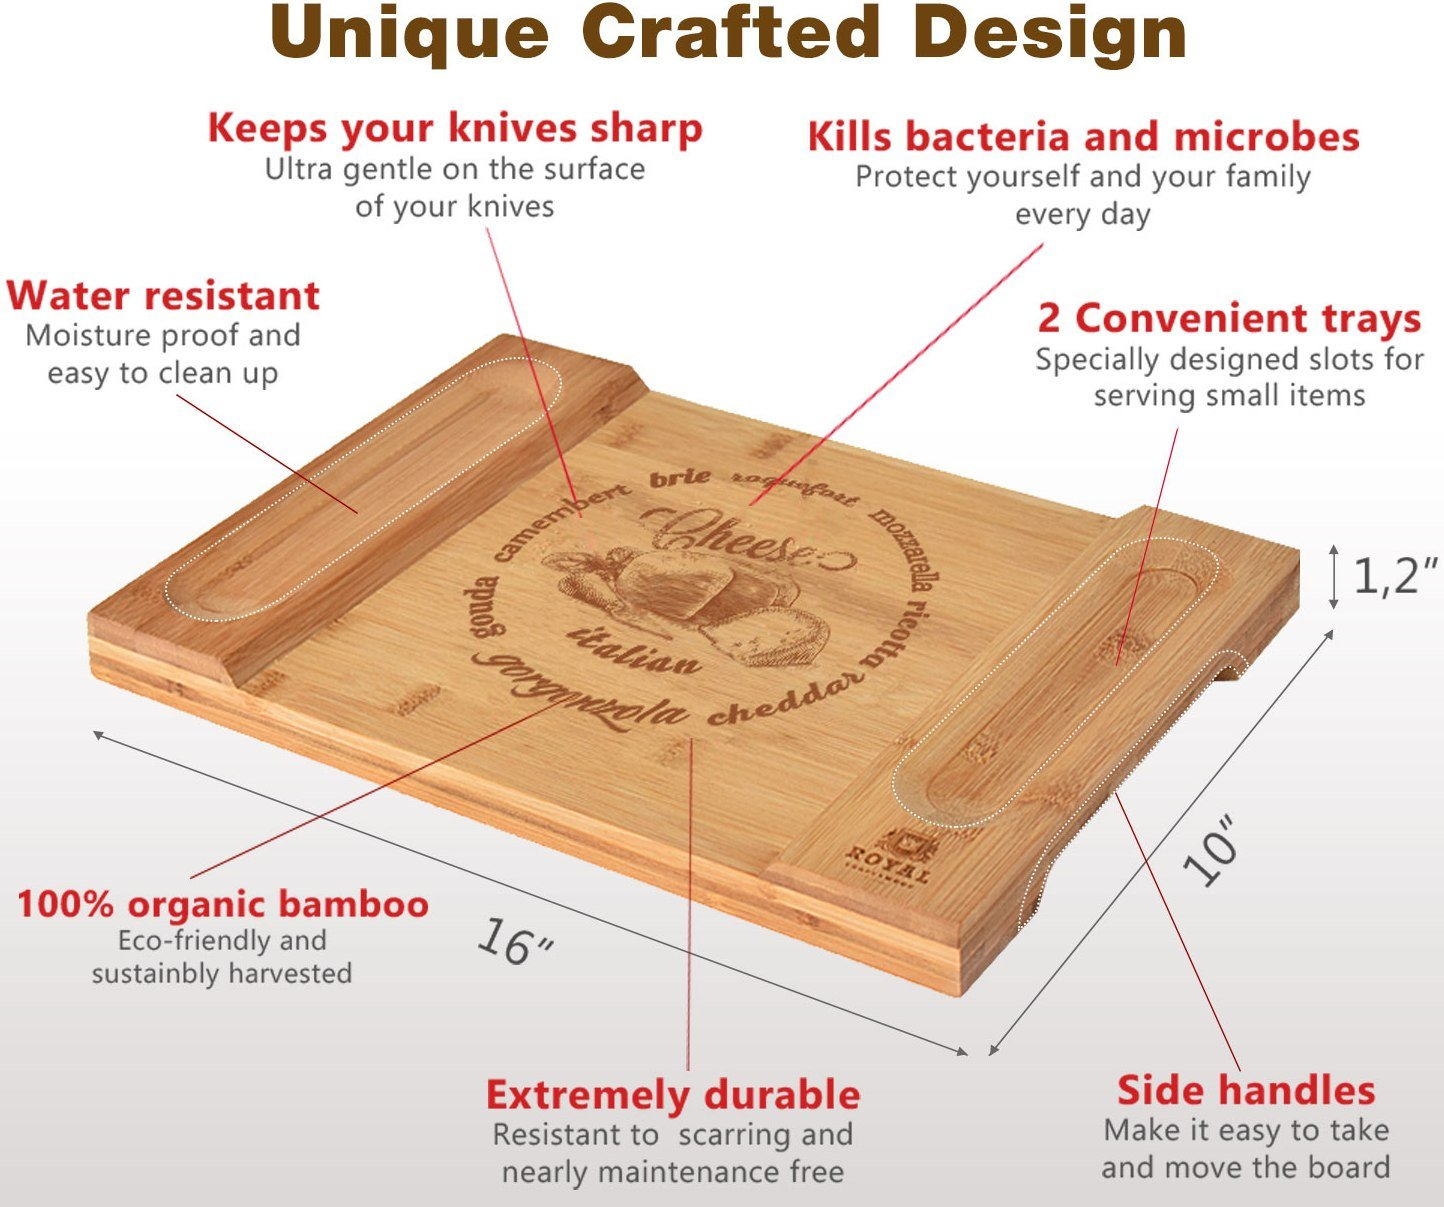 Unique Bamboo Cheese Board, Charcuterie Platter & Serving Tray for Wine, Crackers, Brie and Meat. Large & Thick Wooden Server - Fancy House Warming Gift & Perfect Choice for Gourmets (Bamboo) by Royal Craft Wood (Image #2)